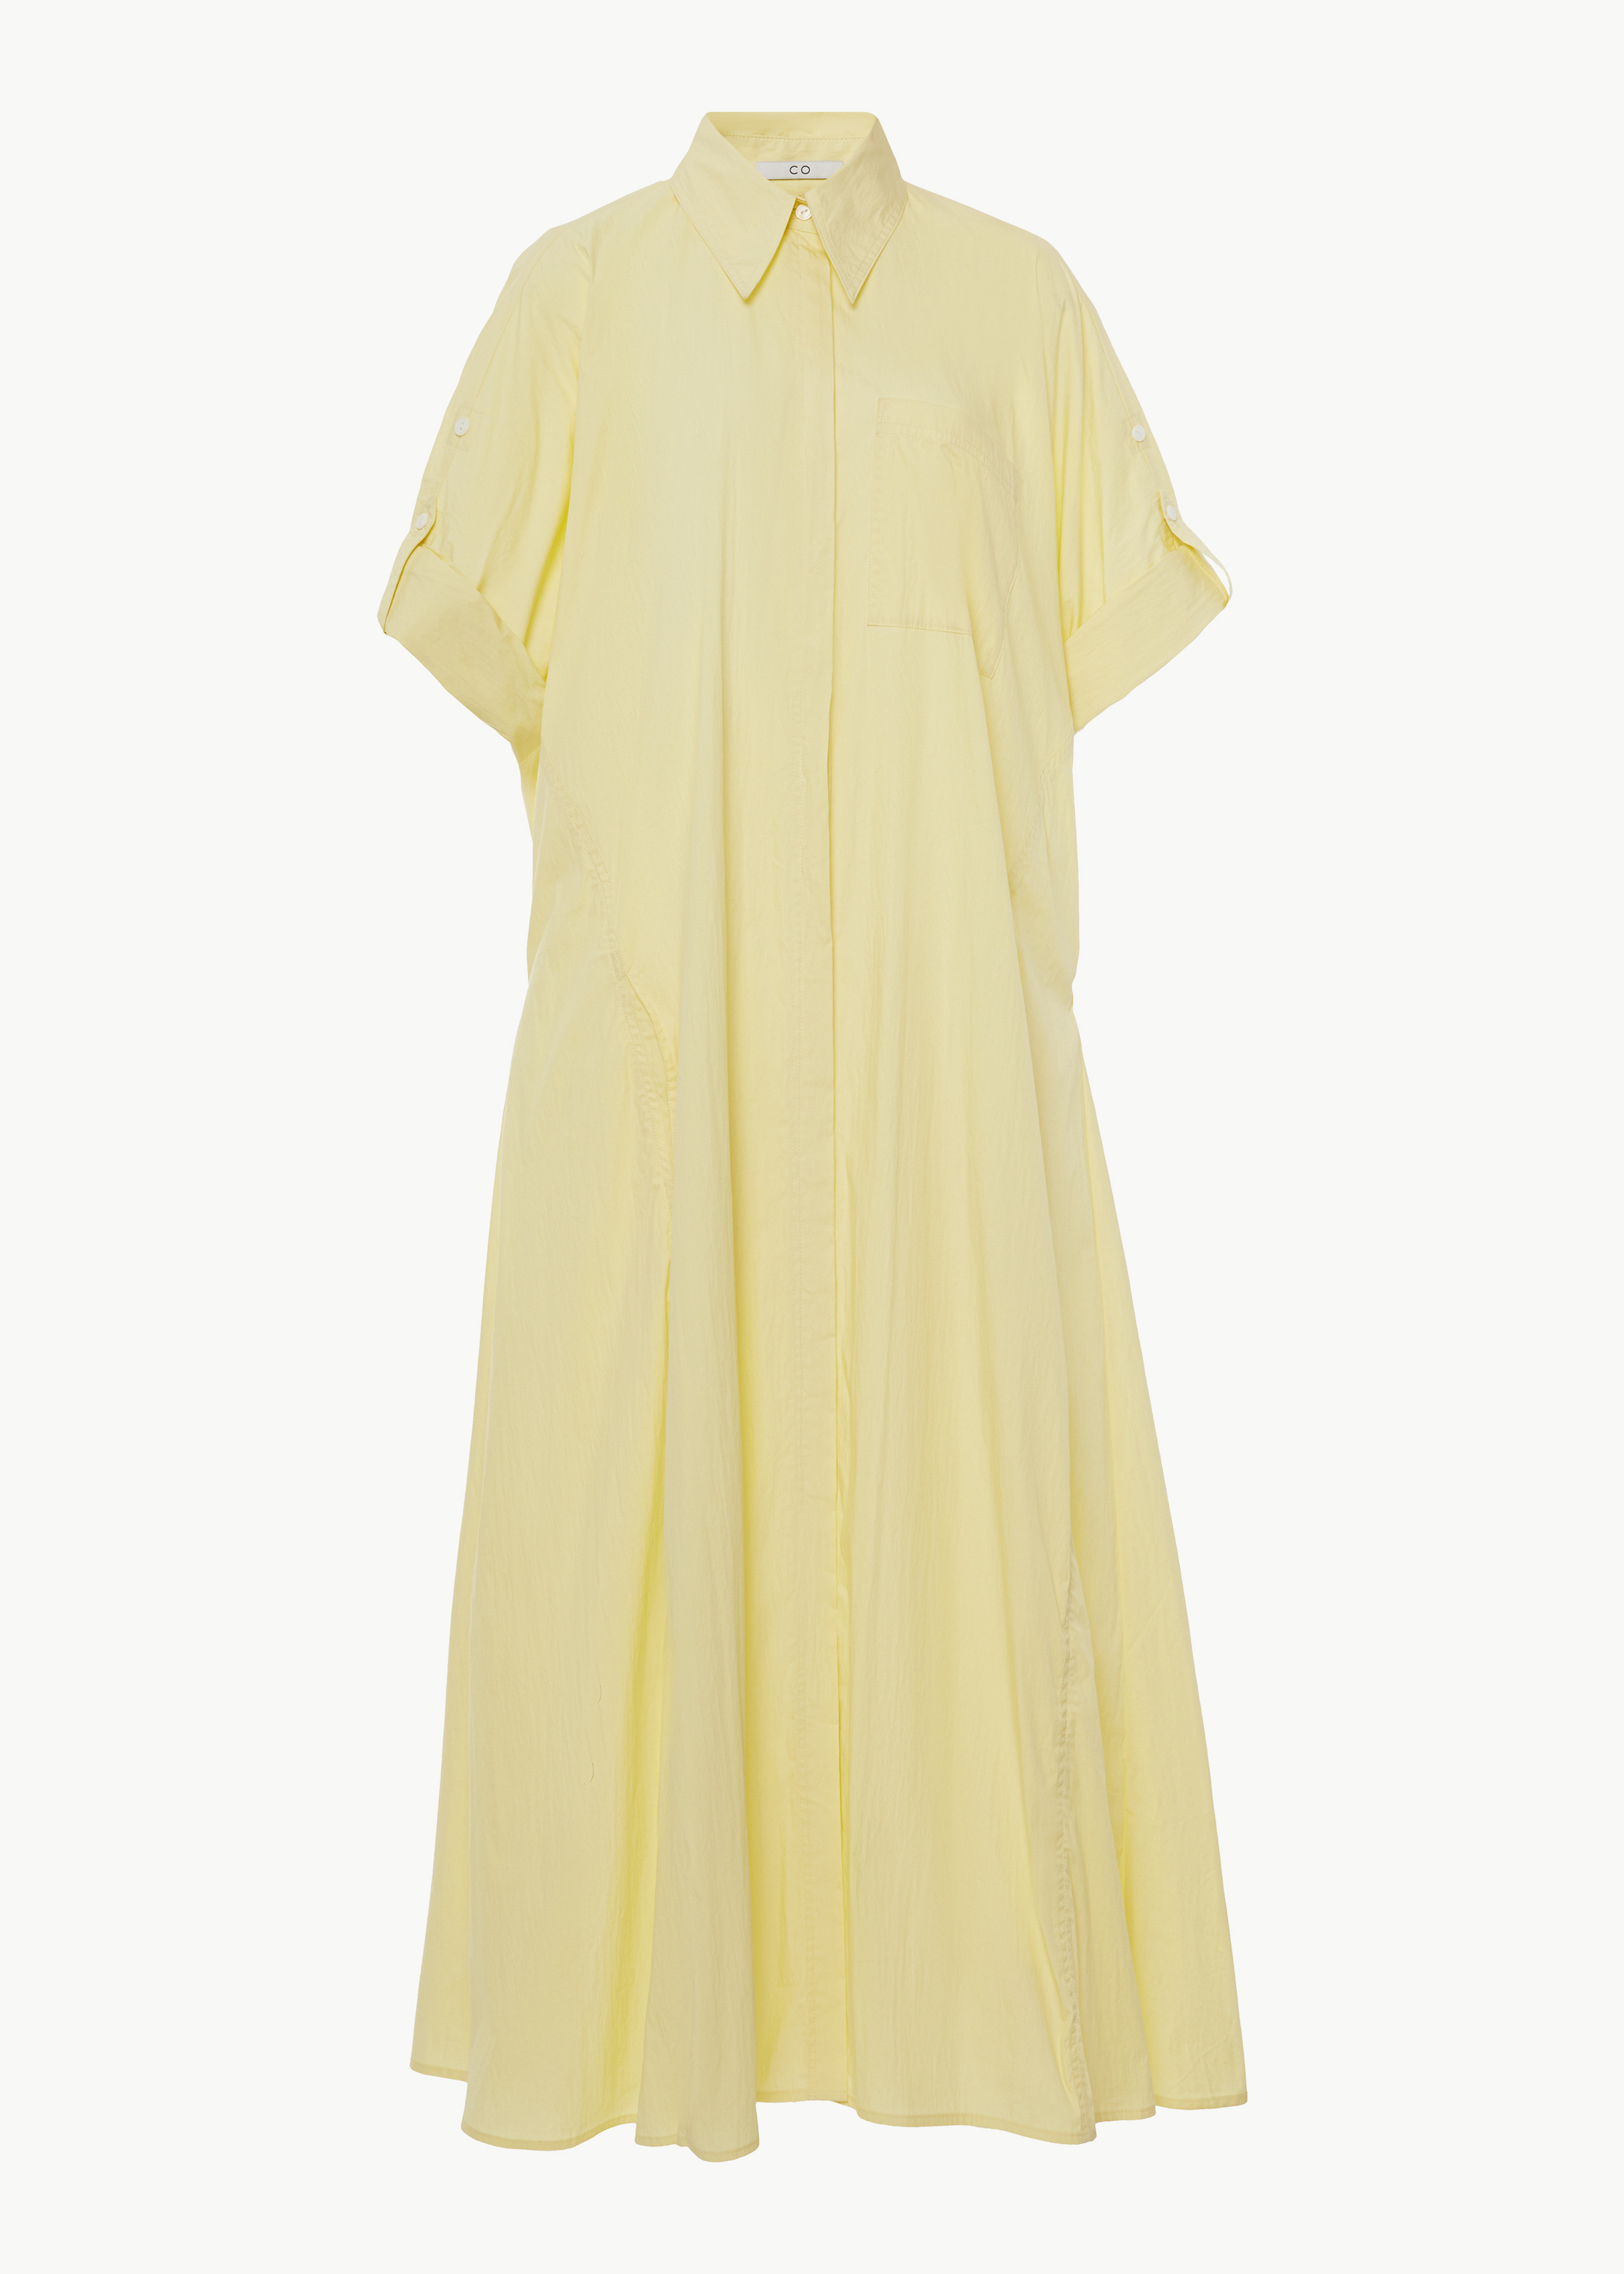 Rolled Sleeve Shirtdress in Cotton Nylon - Blue in Yellow by Co Collections